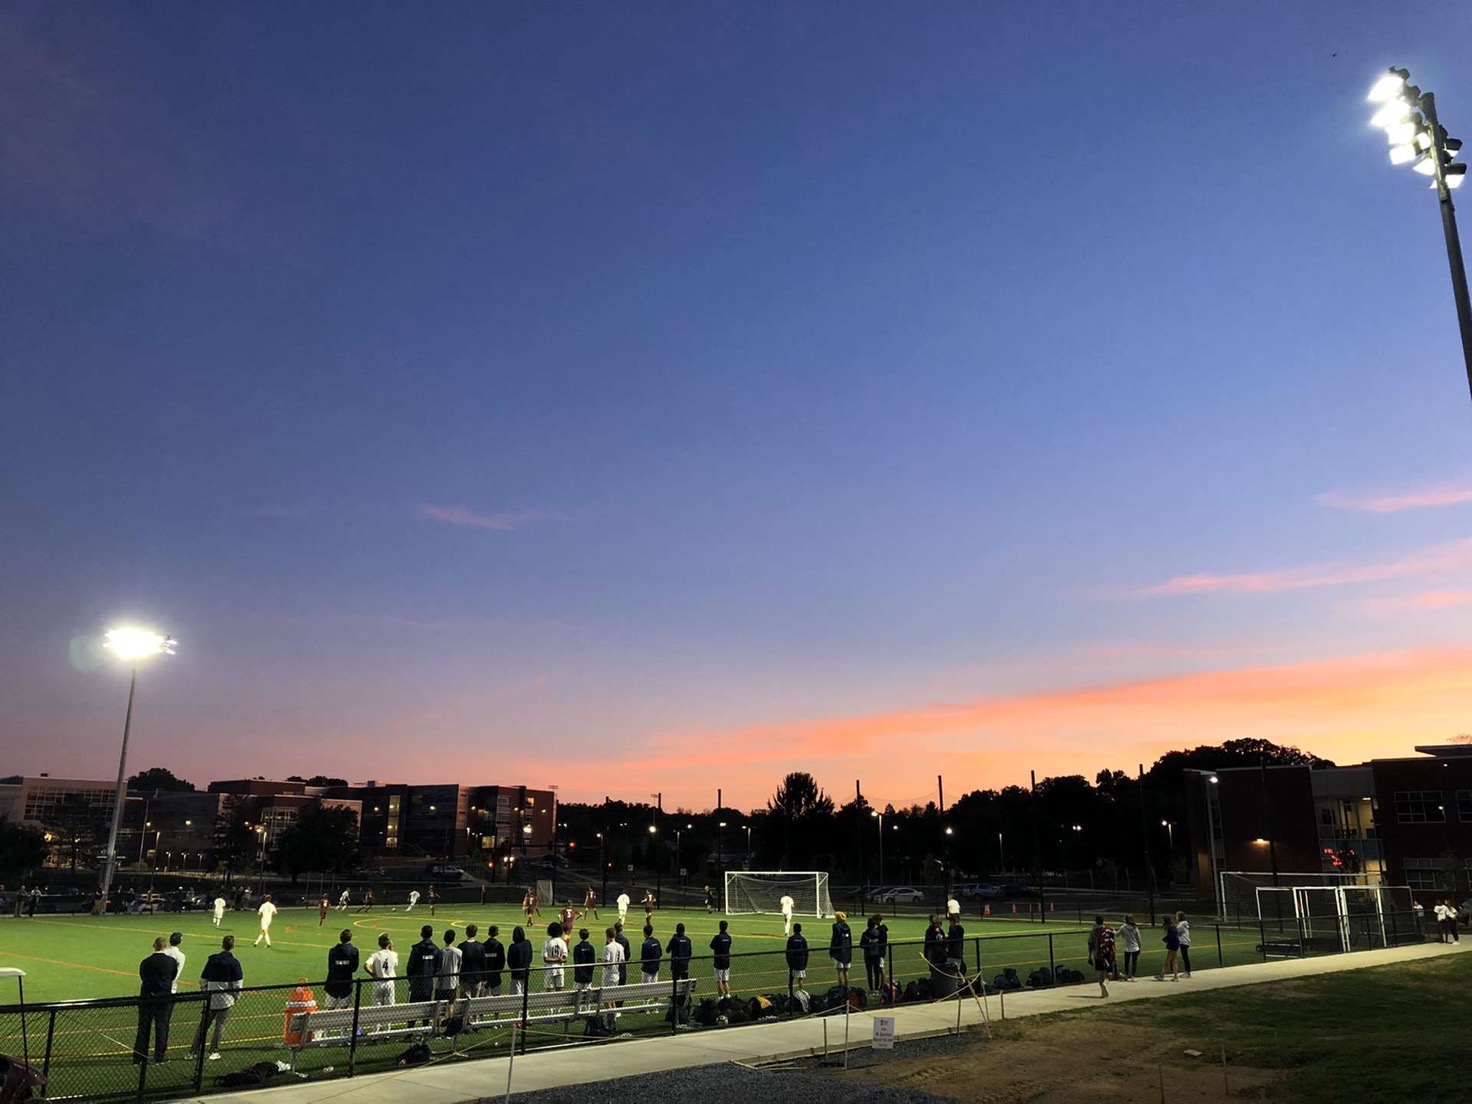 """The sun setting on North Turf Field at State High. This is to represent the """"uneven"""" playing field of athletics. Cristen Barnett, a senior on the Temple Field Hockey team, spoke out about the cancelled Field Hockey game in an interview with The Philadelphia Inquirer. """"It's telling us that these fireworks and setting up for a football game are more important than finishing a Division I contest,"""" Barnett says."""